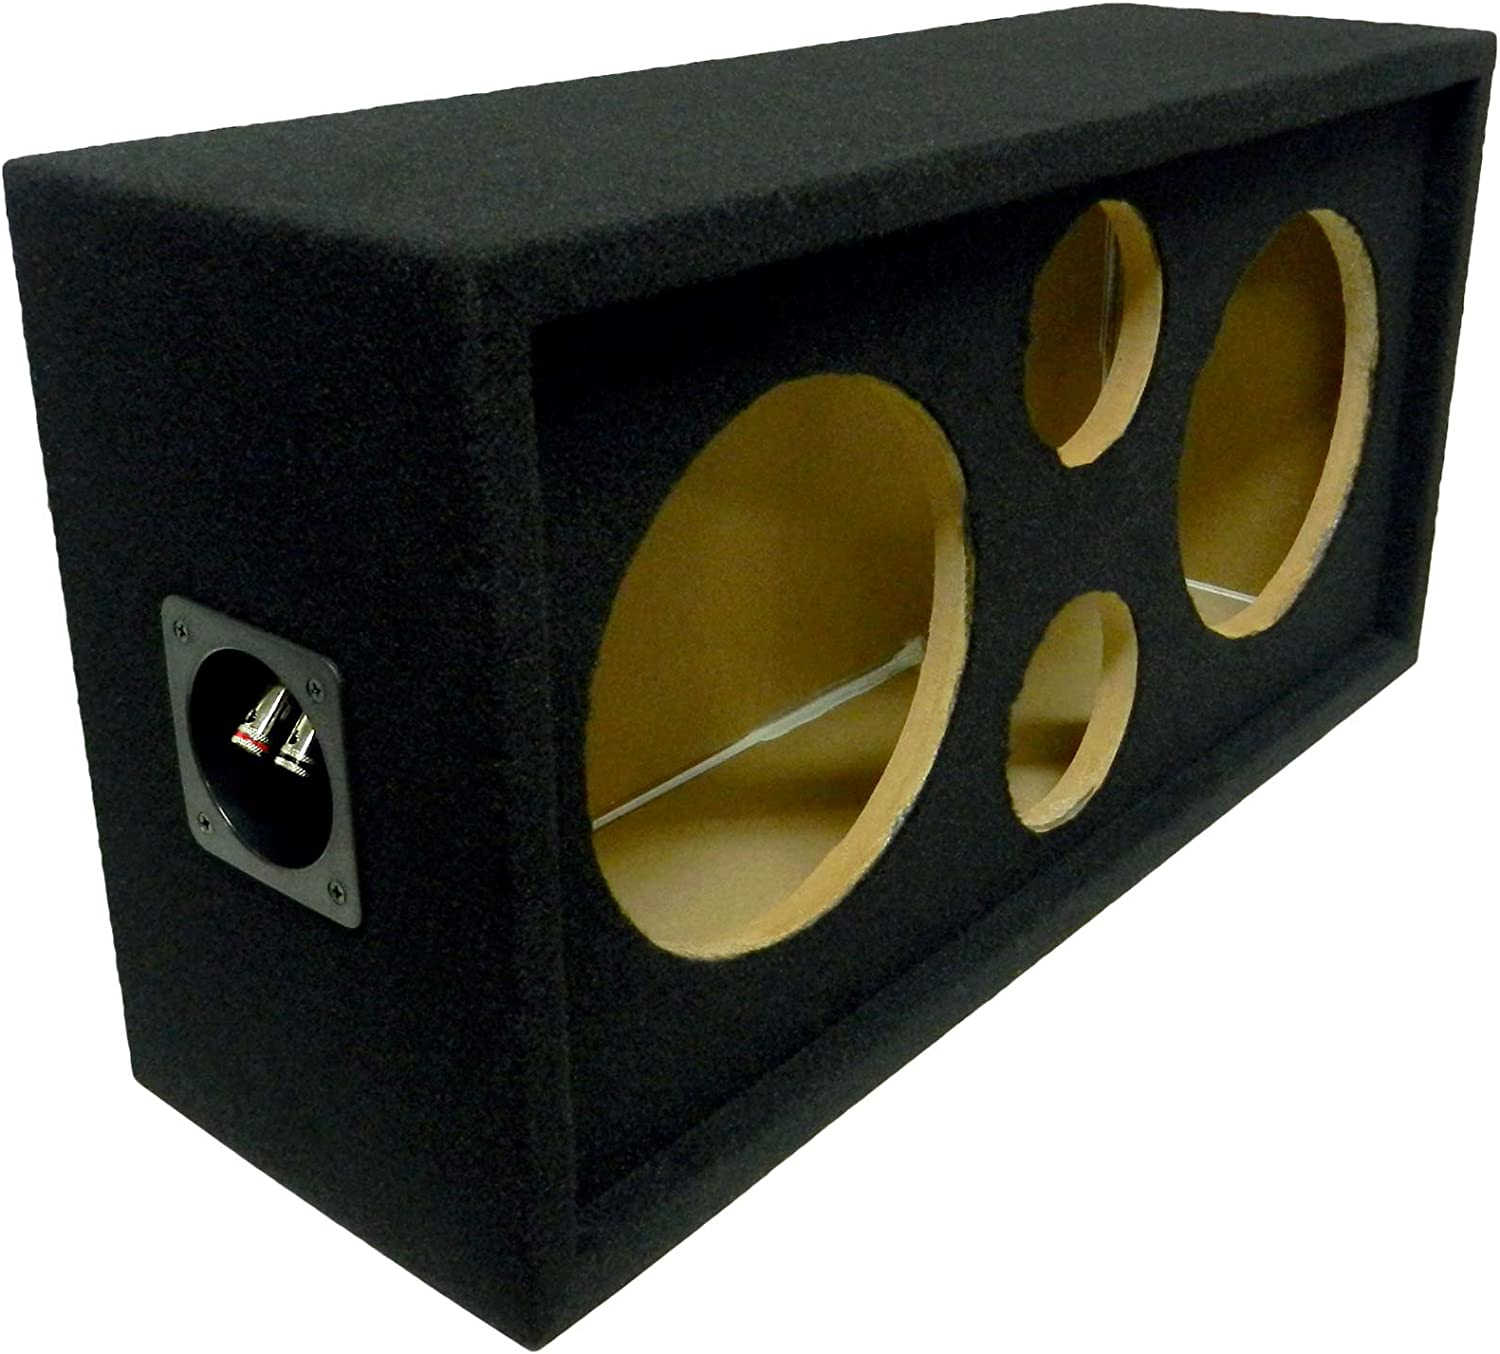 Events and Shows Bass Rockers DJ Speaker Box for The Car Home Fits Two 8 Speakers and Two 3.75 Tweeters Makes Installs Clean and Super Easy BRCH8